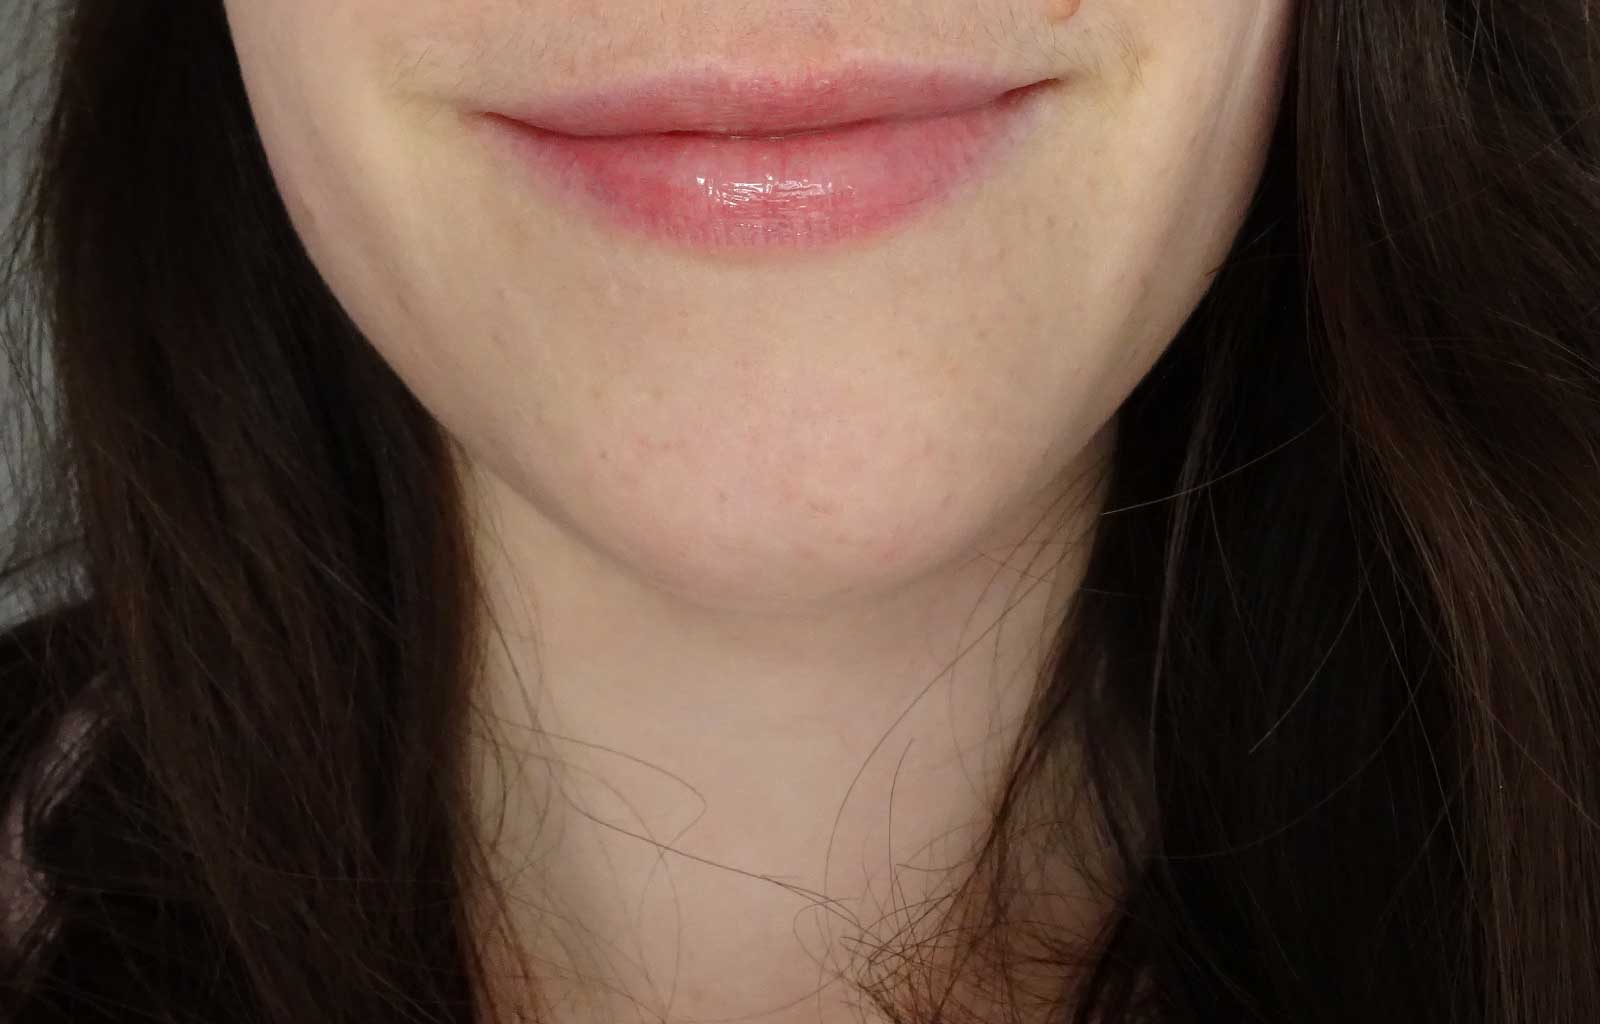 maybelline lifter gloss ice swatch